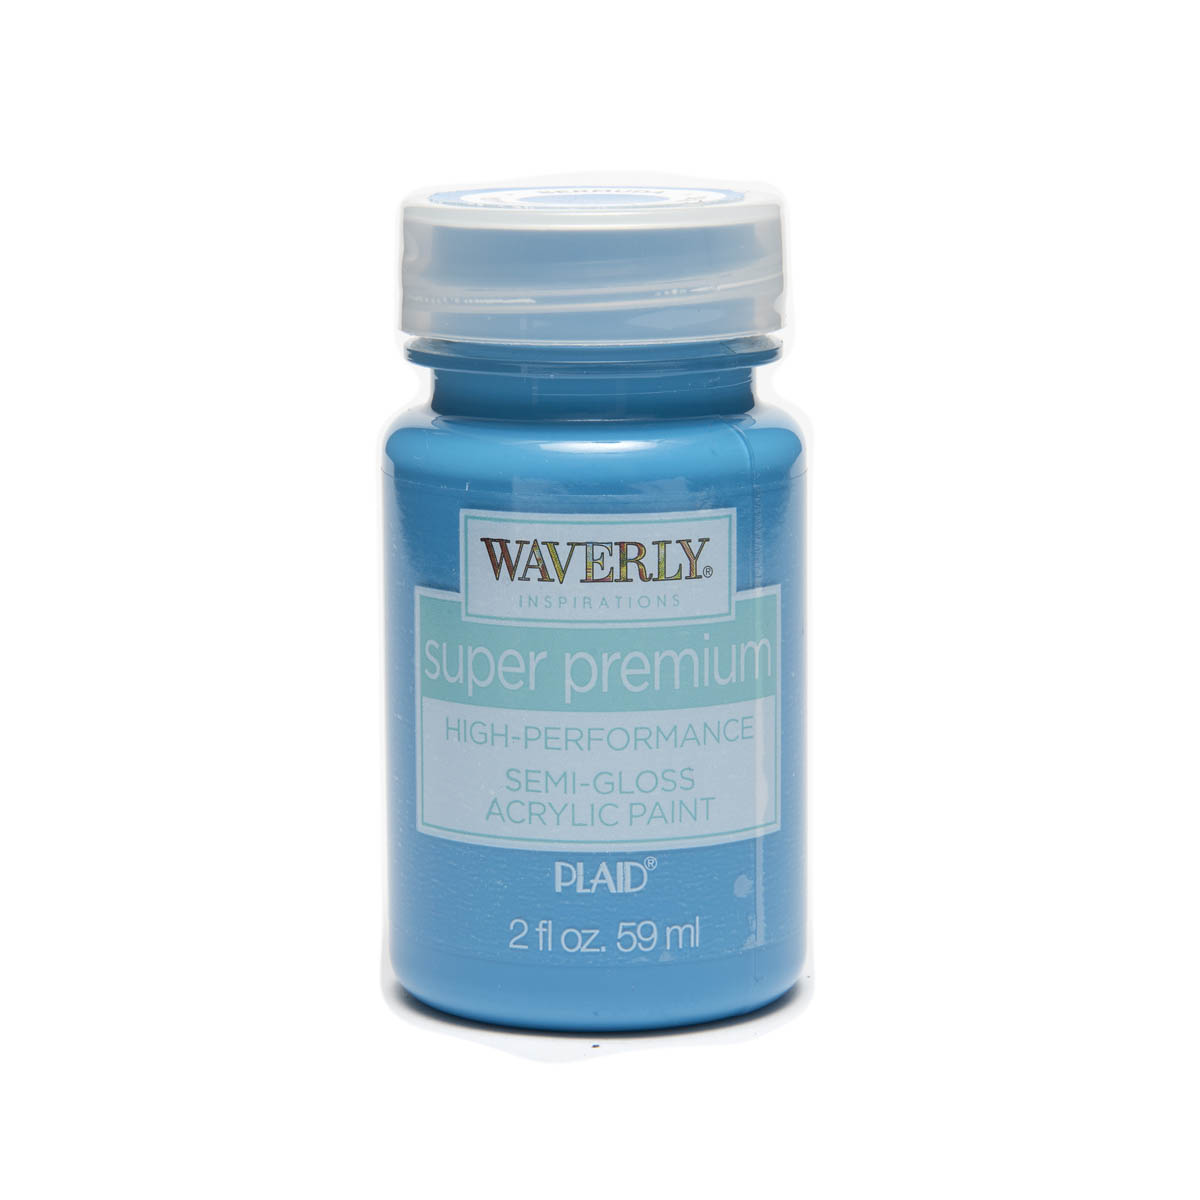 Waverly ® Inspirations Super Premium Semi-Gloss Acrylic Paint - Bermuda, 2 oz.